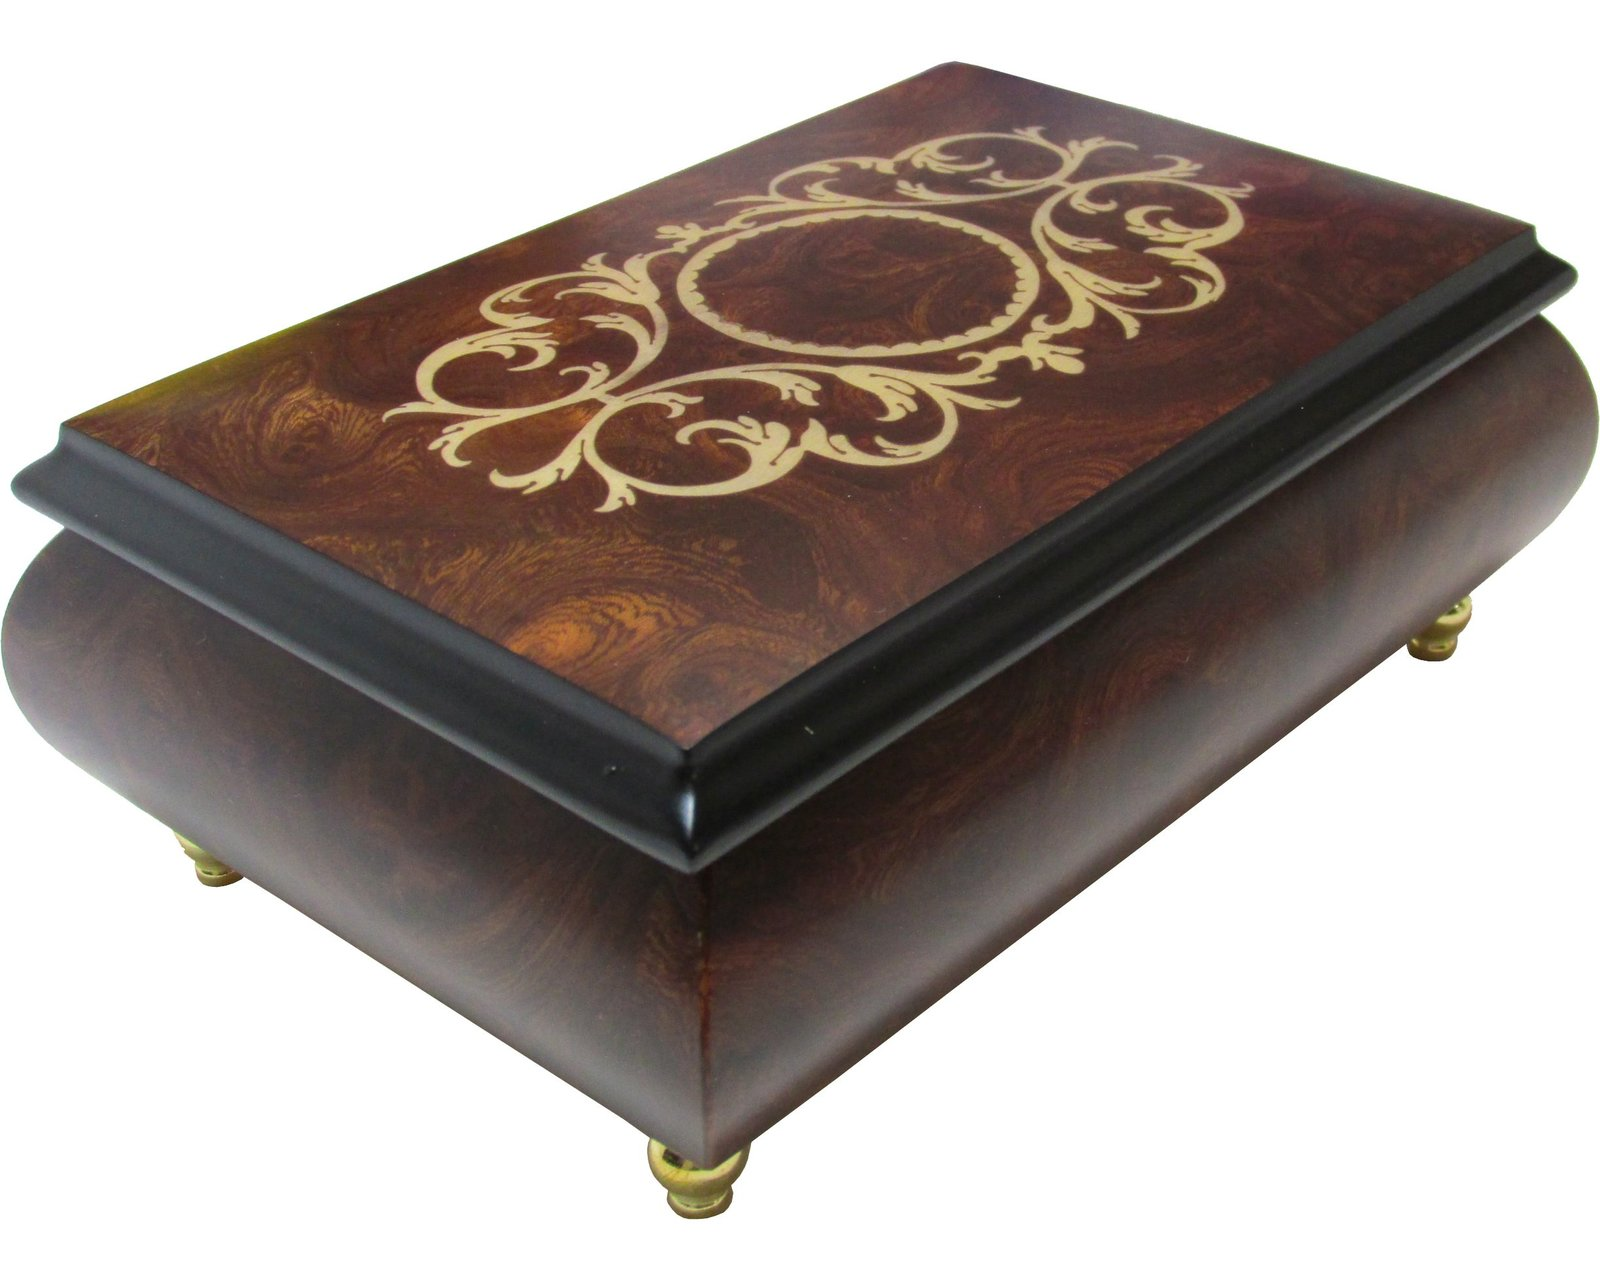 "Primary image for Italian Music Box, 6.5"", Arabesque Inlay, Matte Elm"